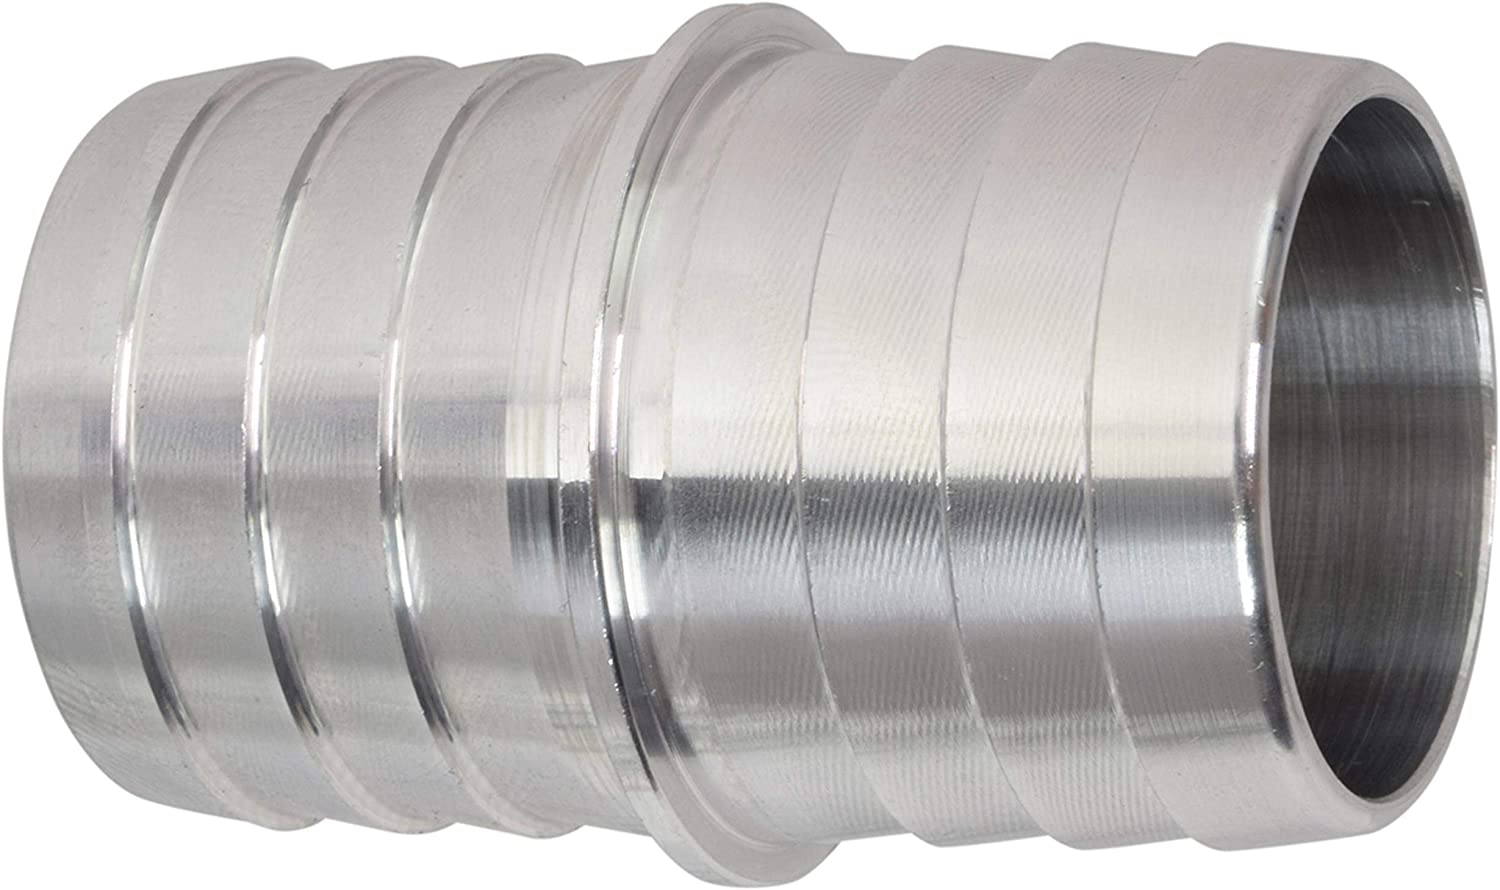 DERPIPE Stainless Steel 1-1//4 Hose Barb Union Coupling Fitting Straight Splice Extend tubing Fitting